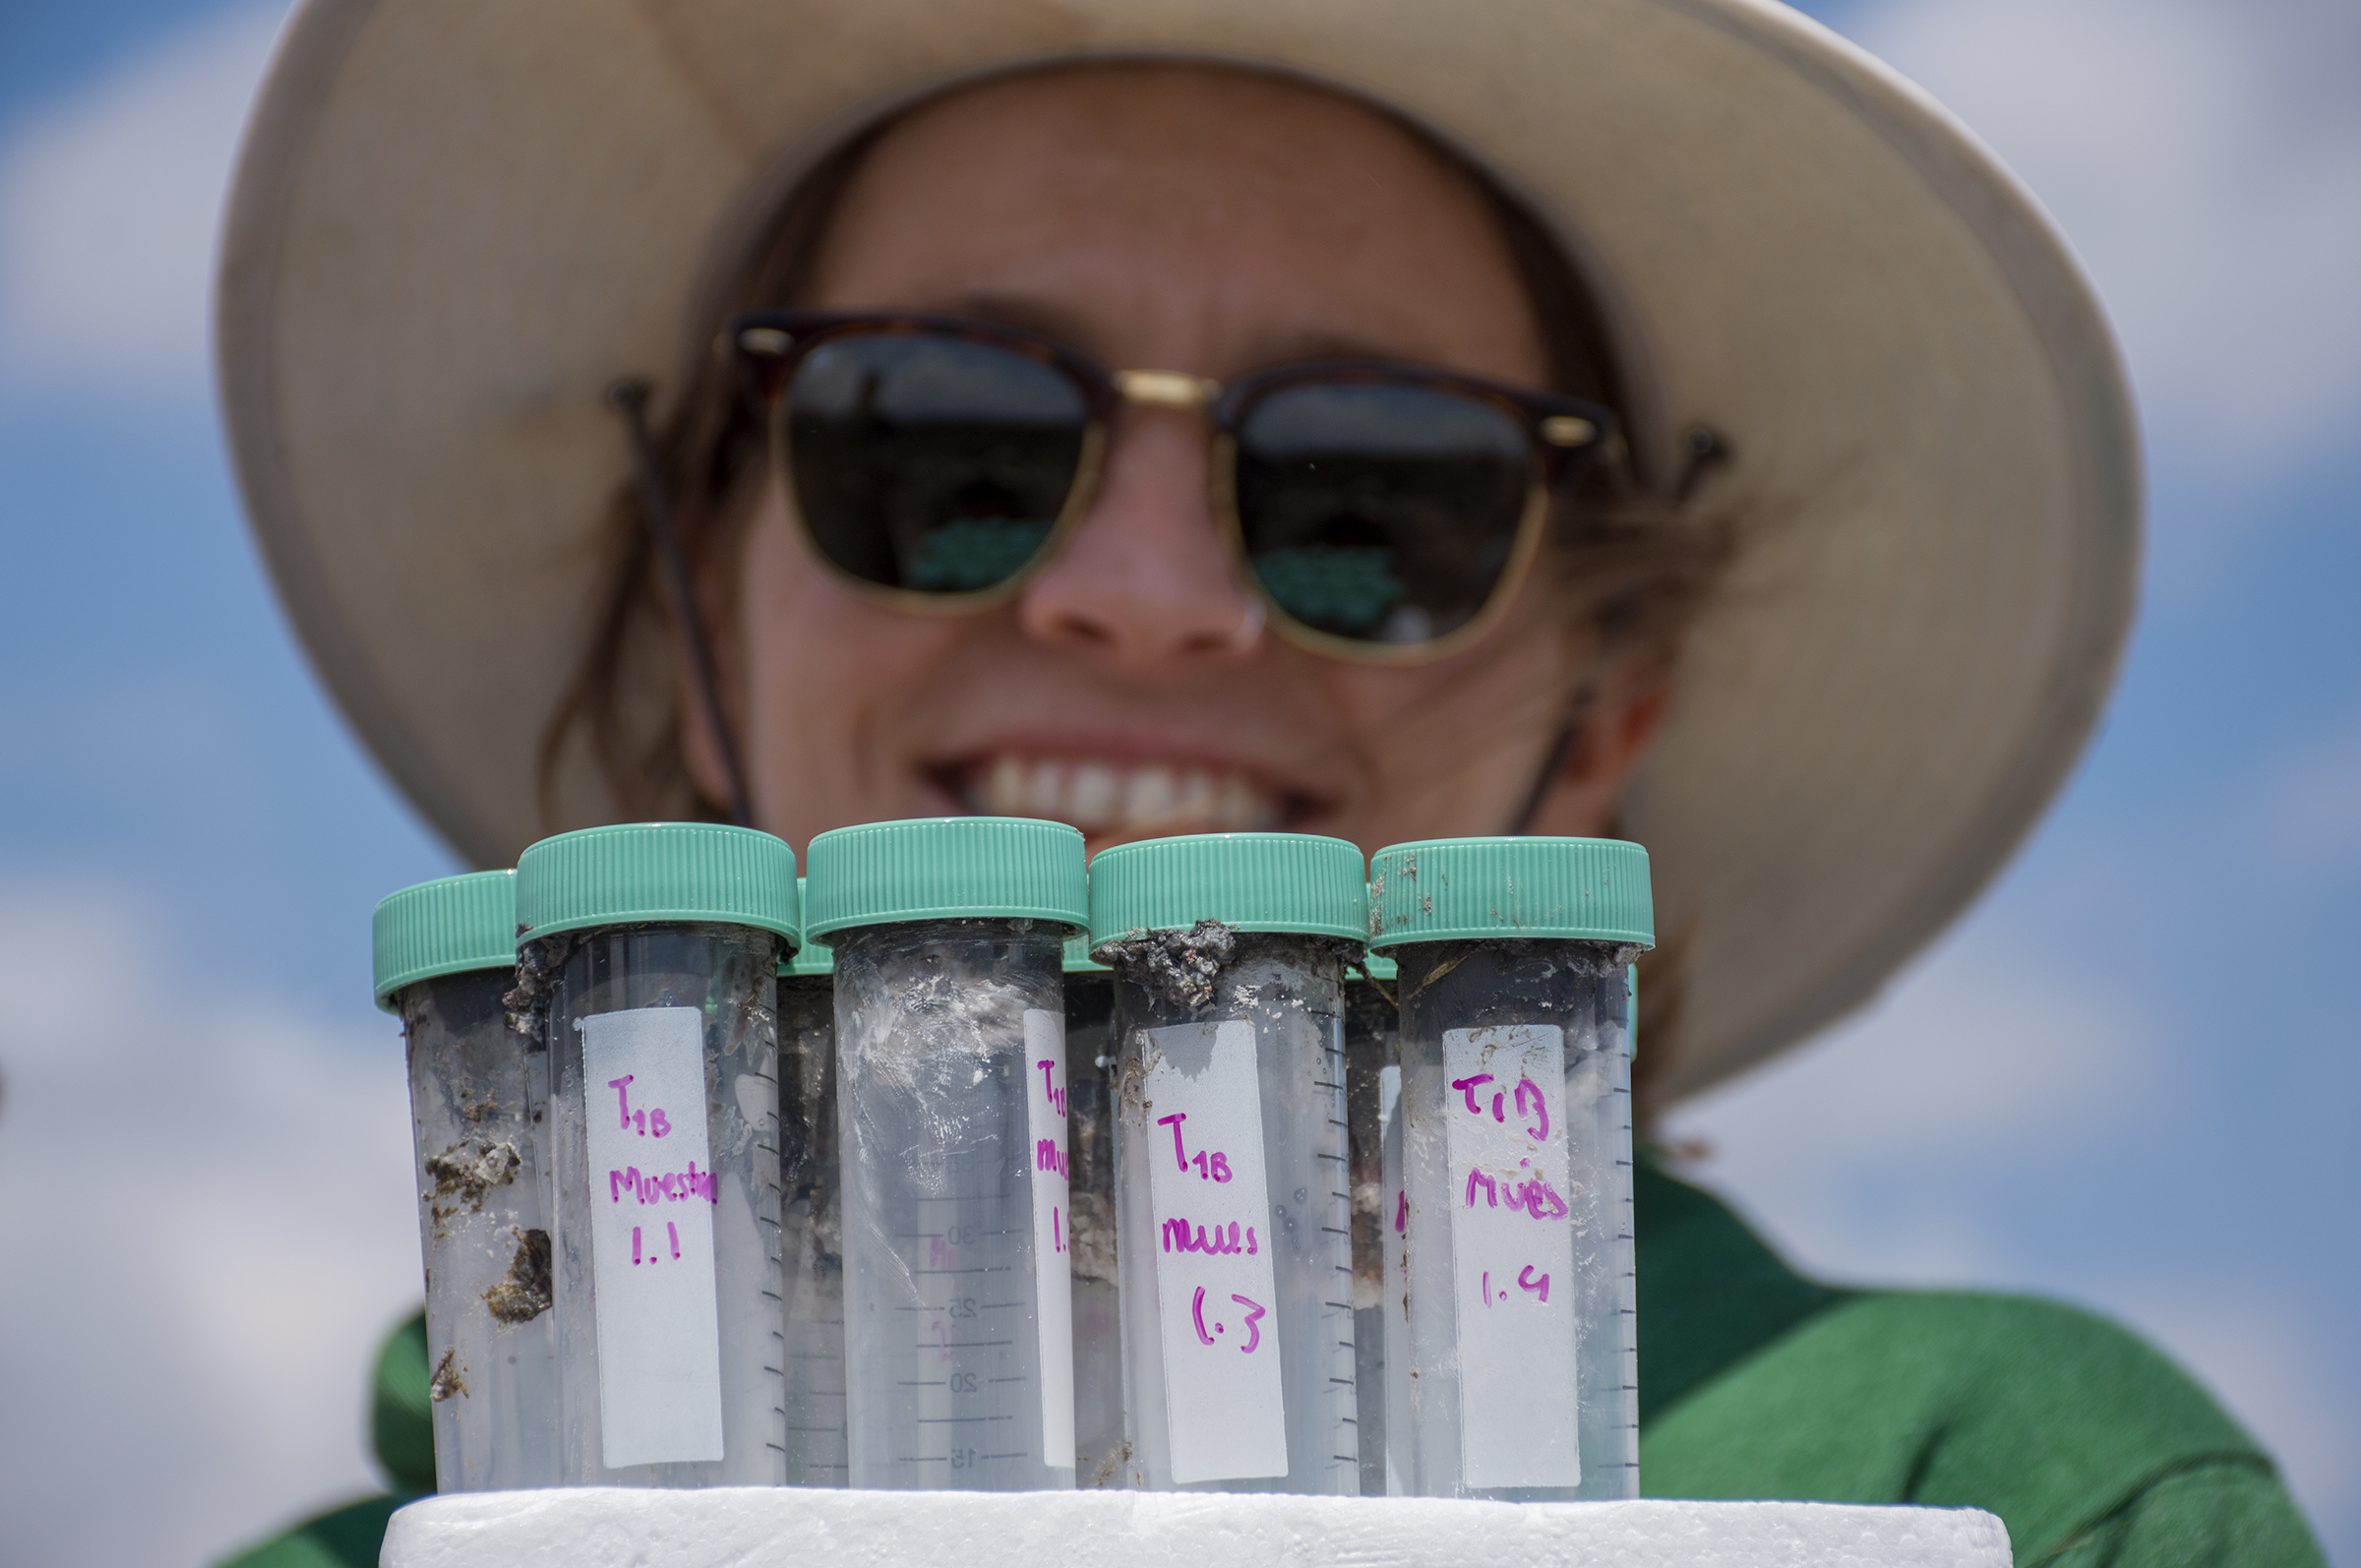 Elena Martin Clemente, a collaborating researcher from Spain, smiles behind vials that will help provide a measure of microbial biodiversity in the basin.